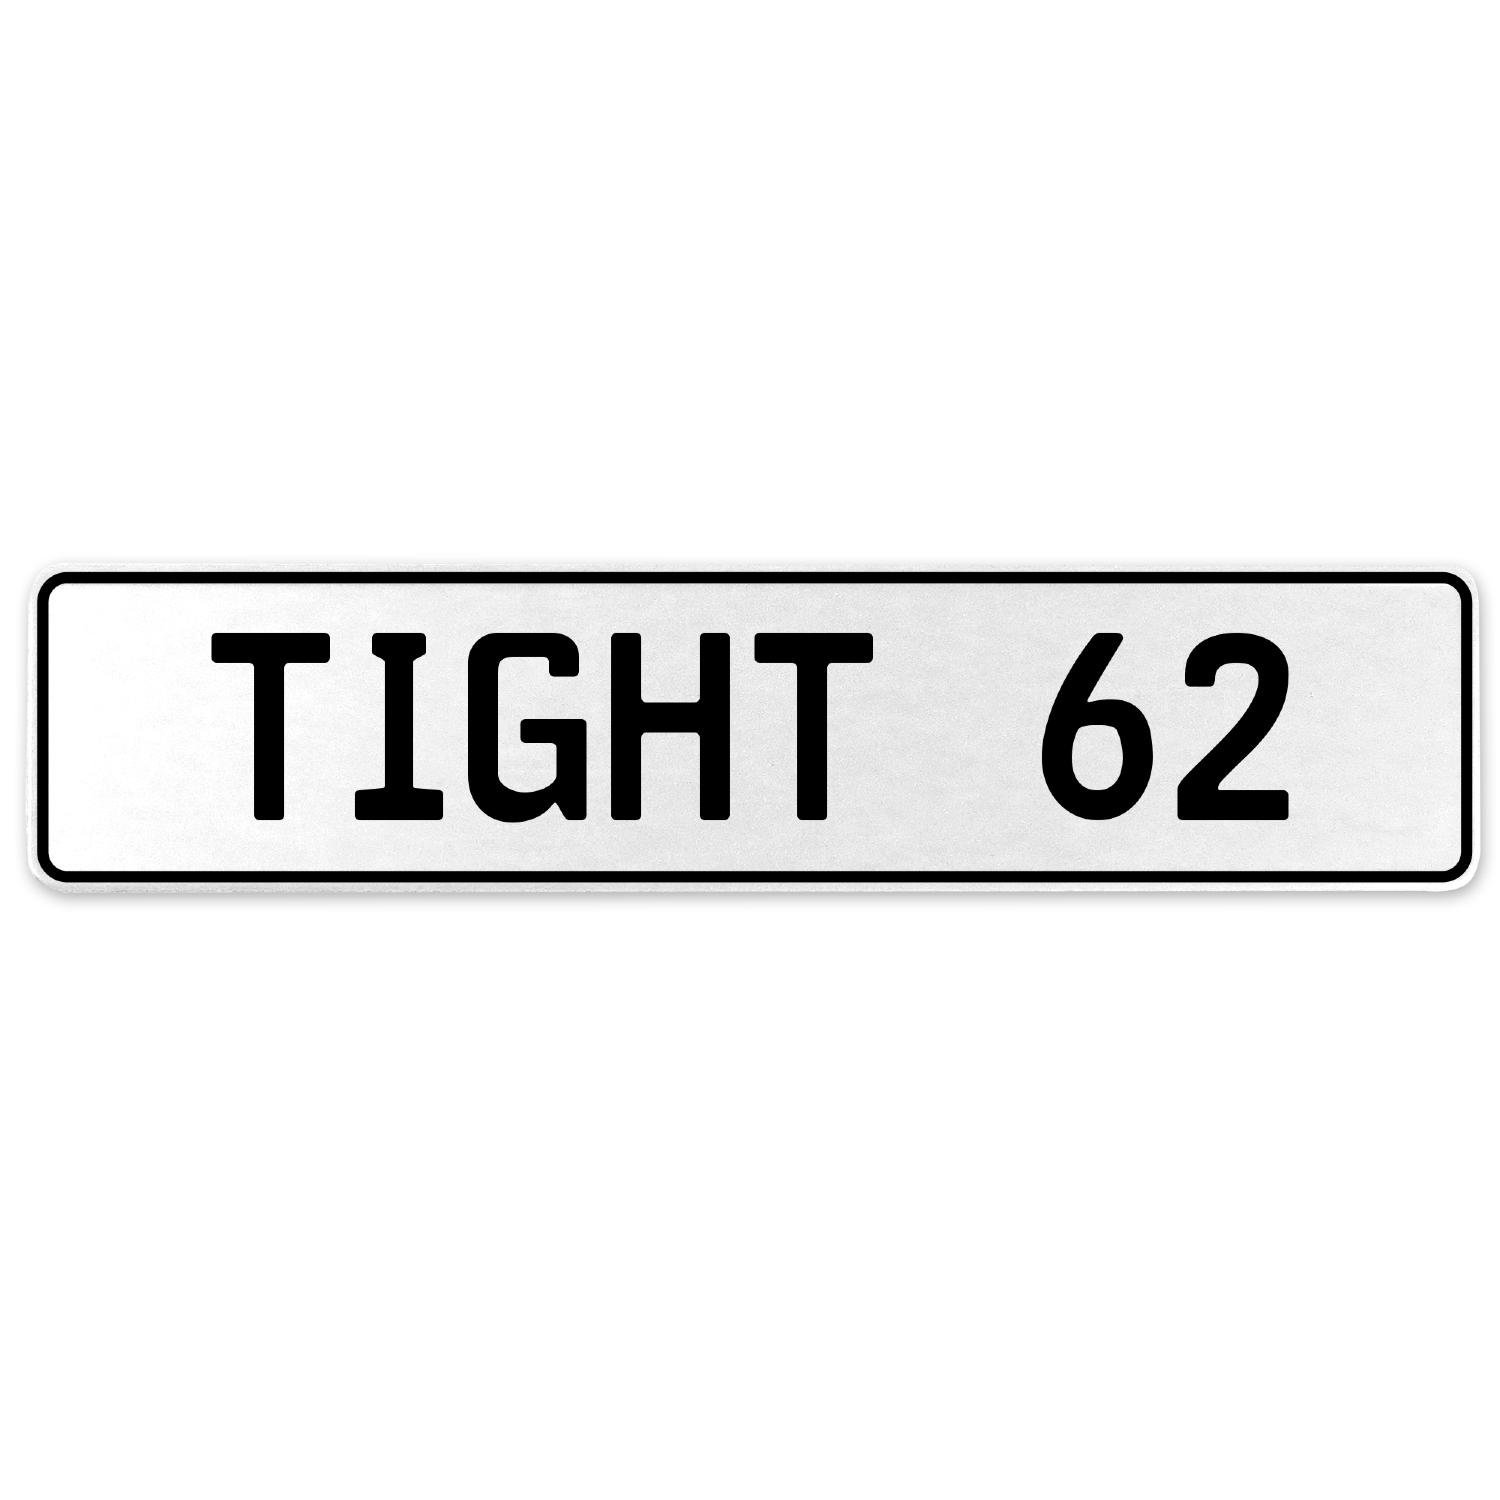 Vintage Parts 554758 Tight 62 White Stamped Aluminum European License Plate